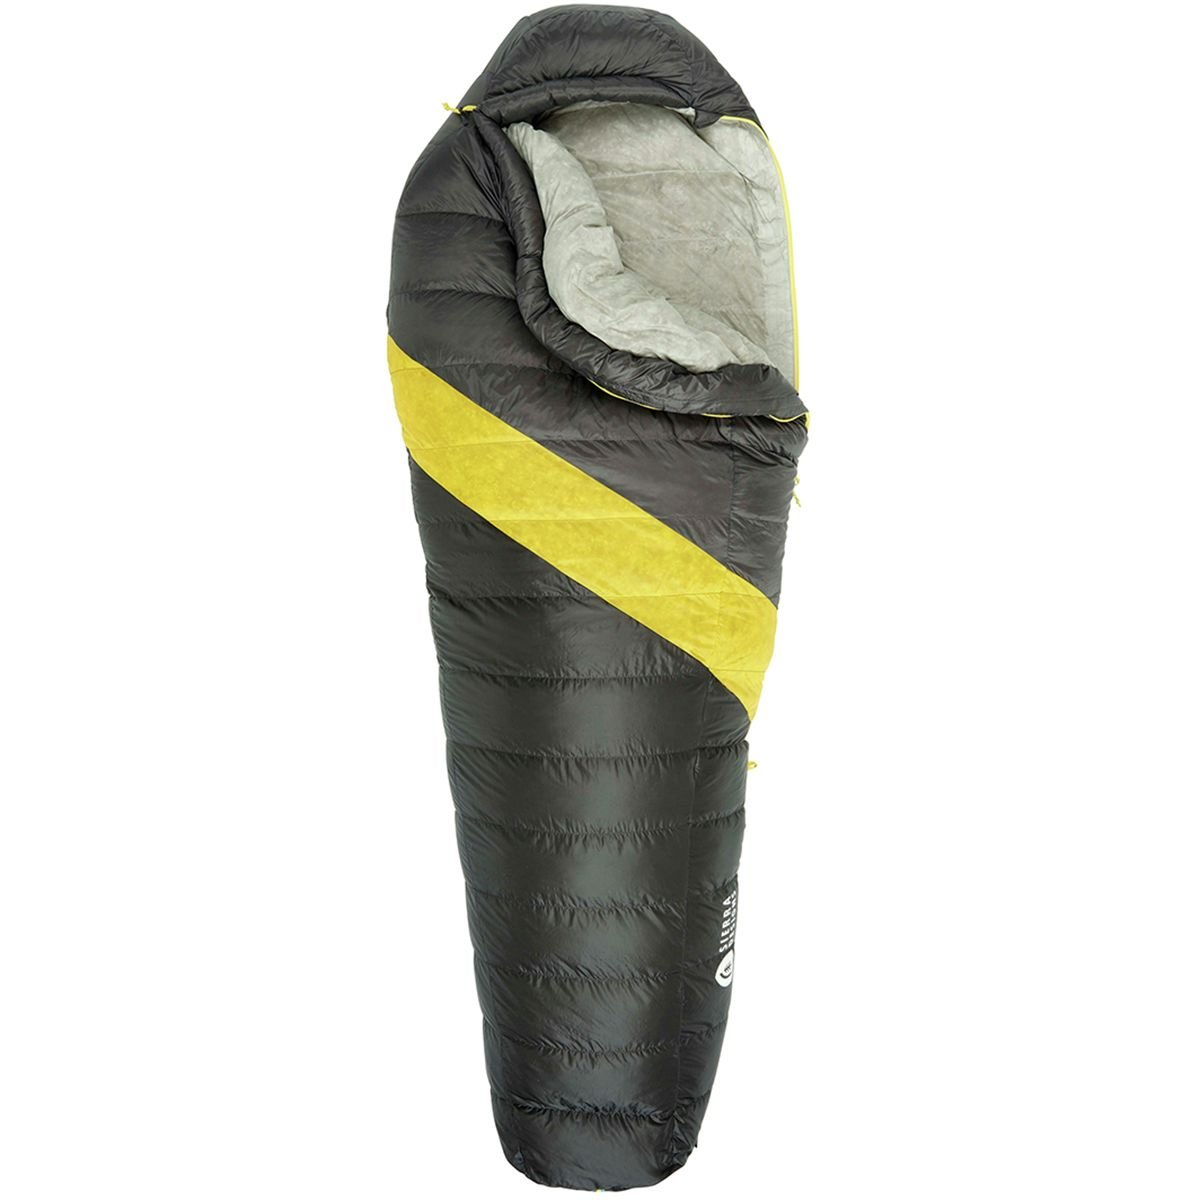 An image related to Sierra Design Nitro 800 Nylon Ripstop Sleeping Bag